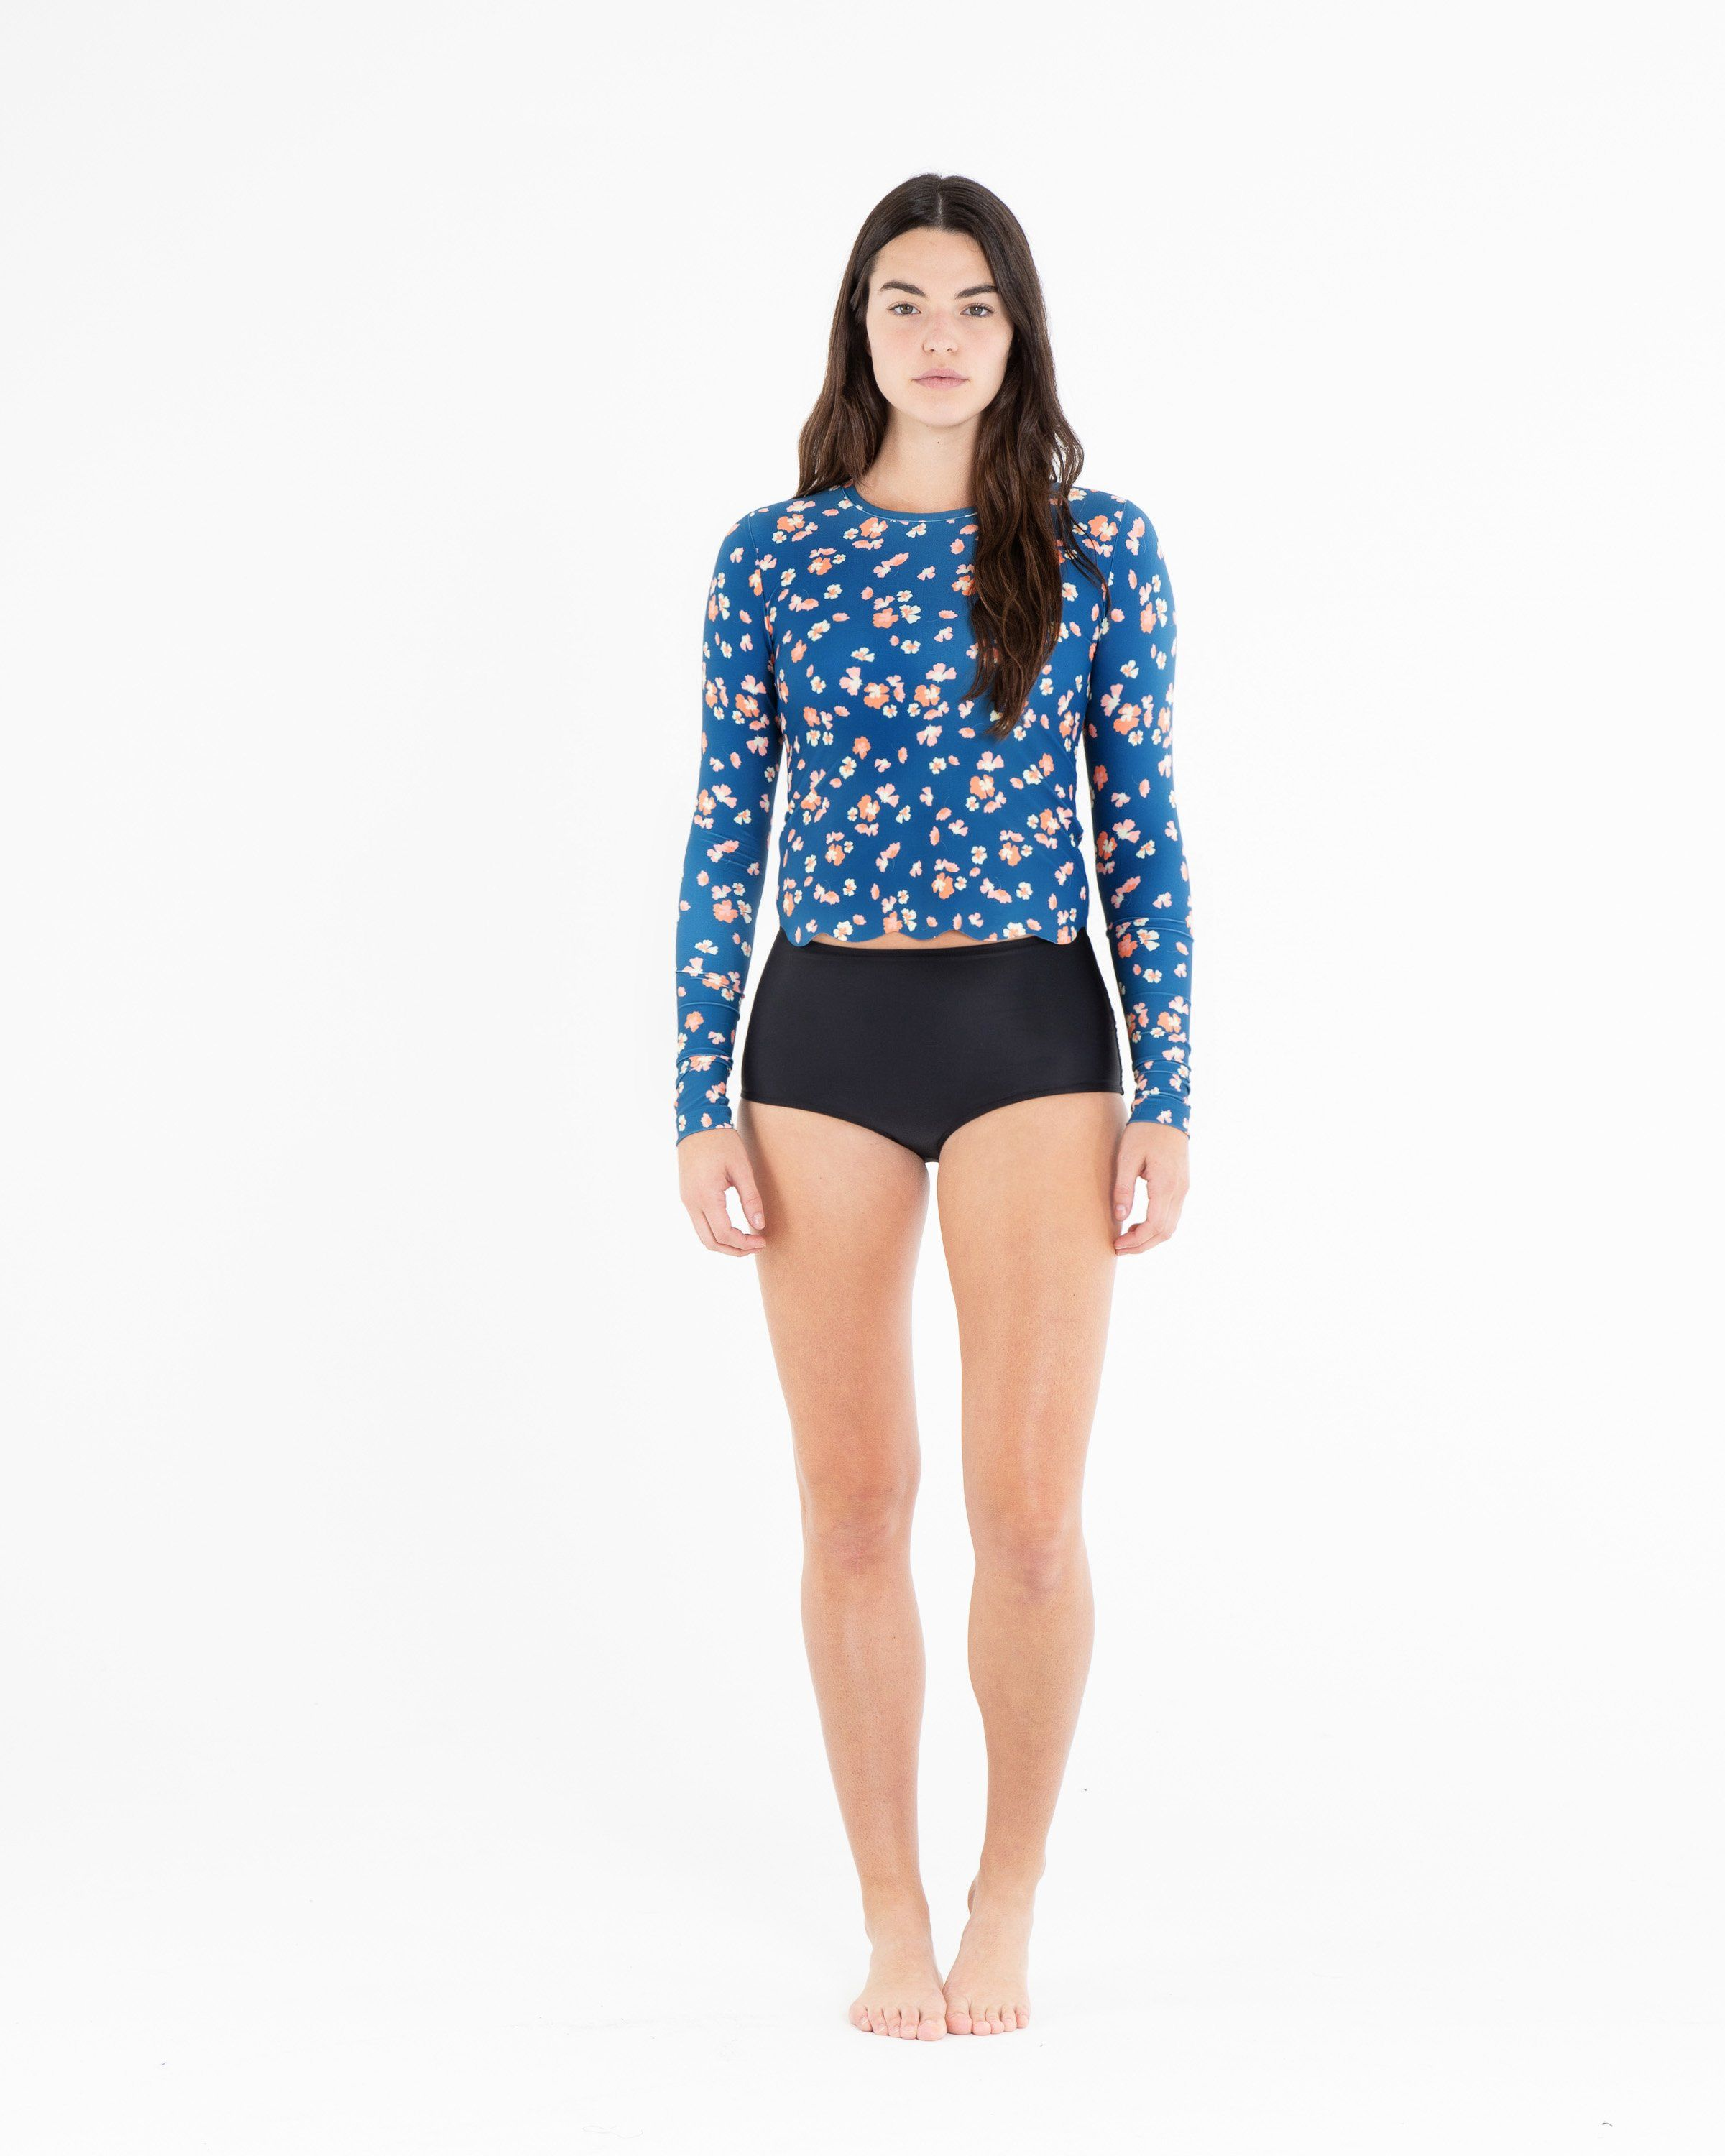 Scallop Cut Swim T - Blue Floral